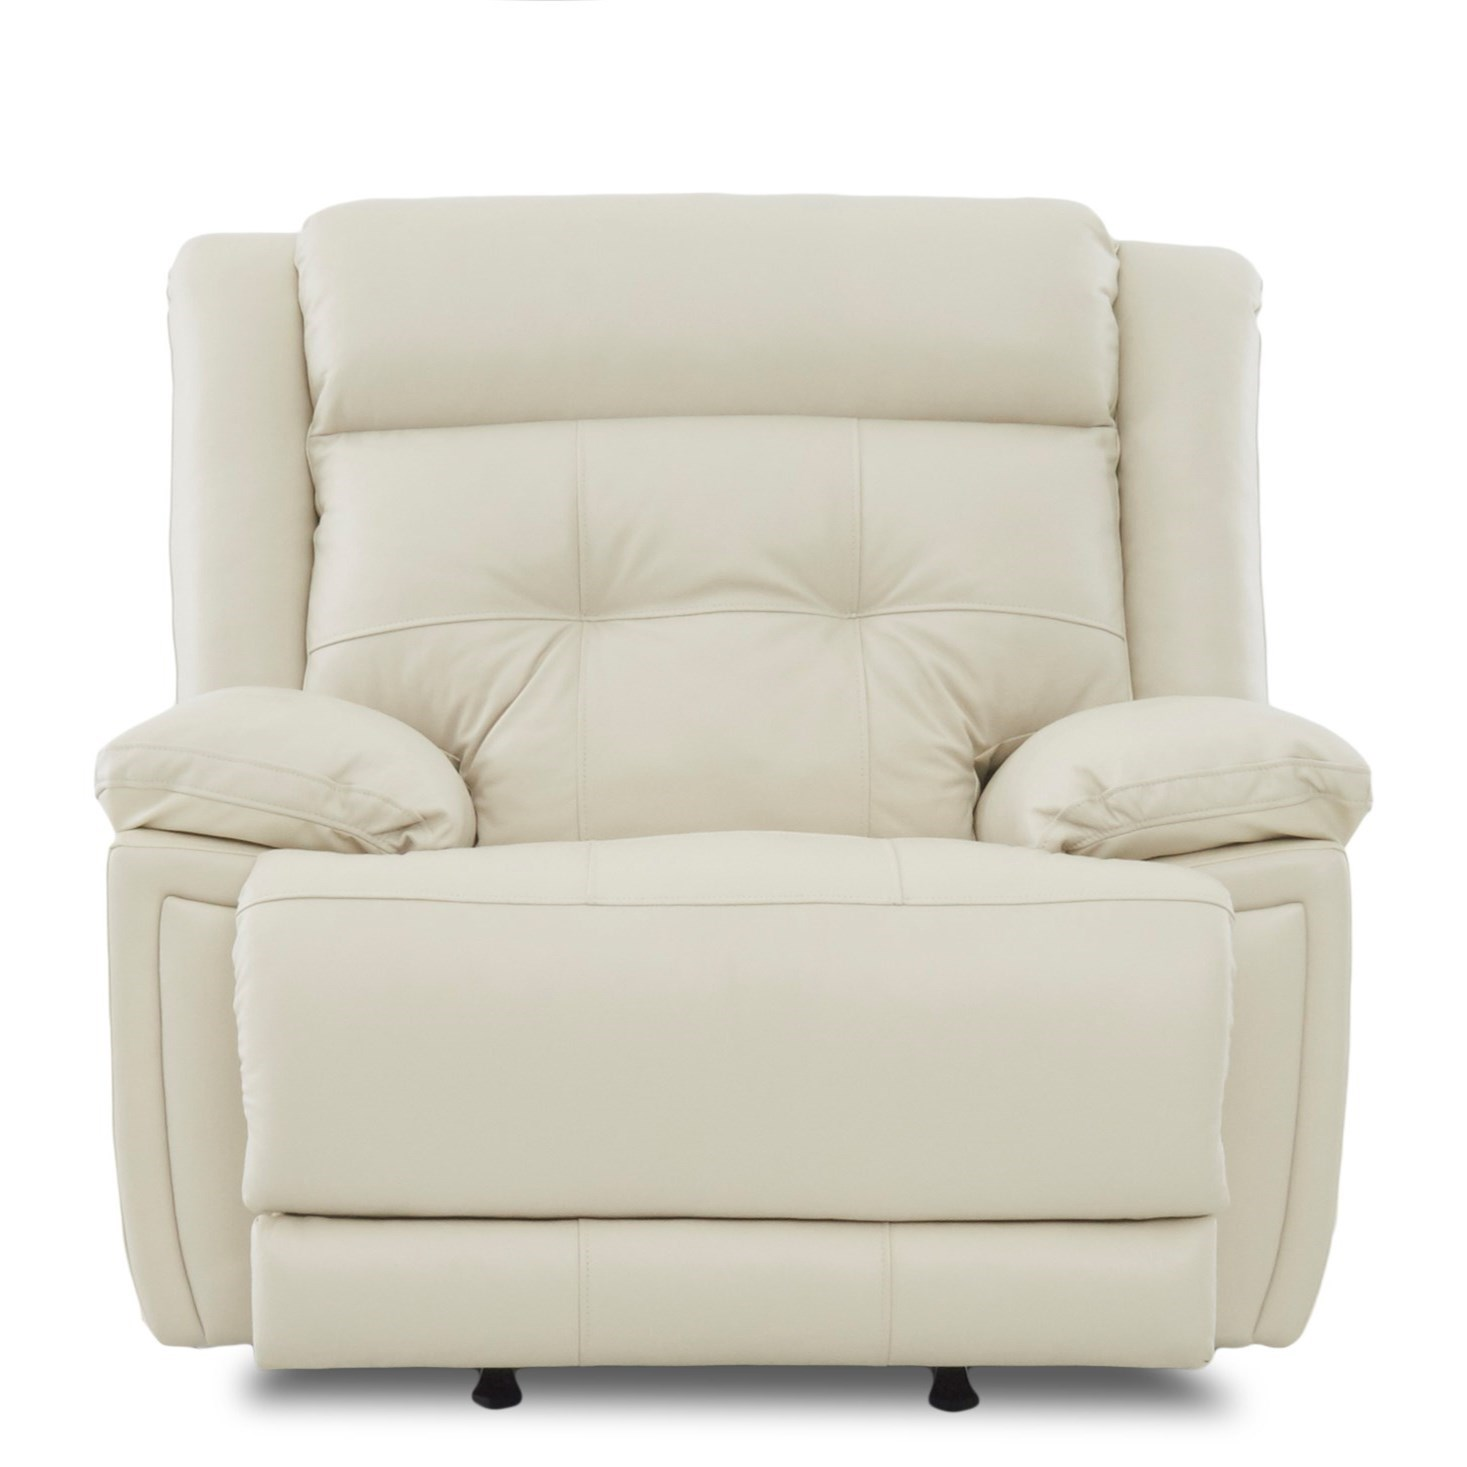 Casual Power Recliner with Power Headrest/Lumbar and USB Port